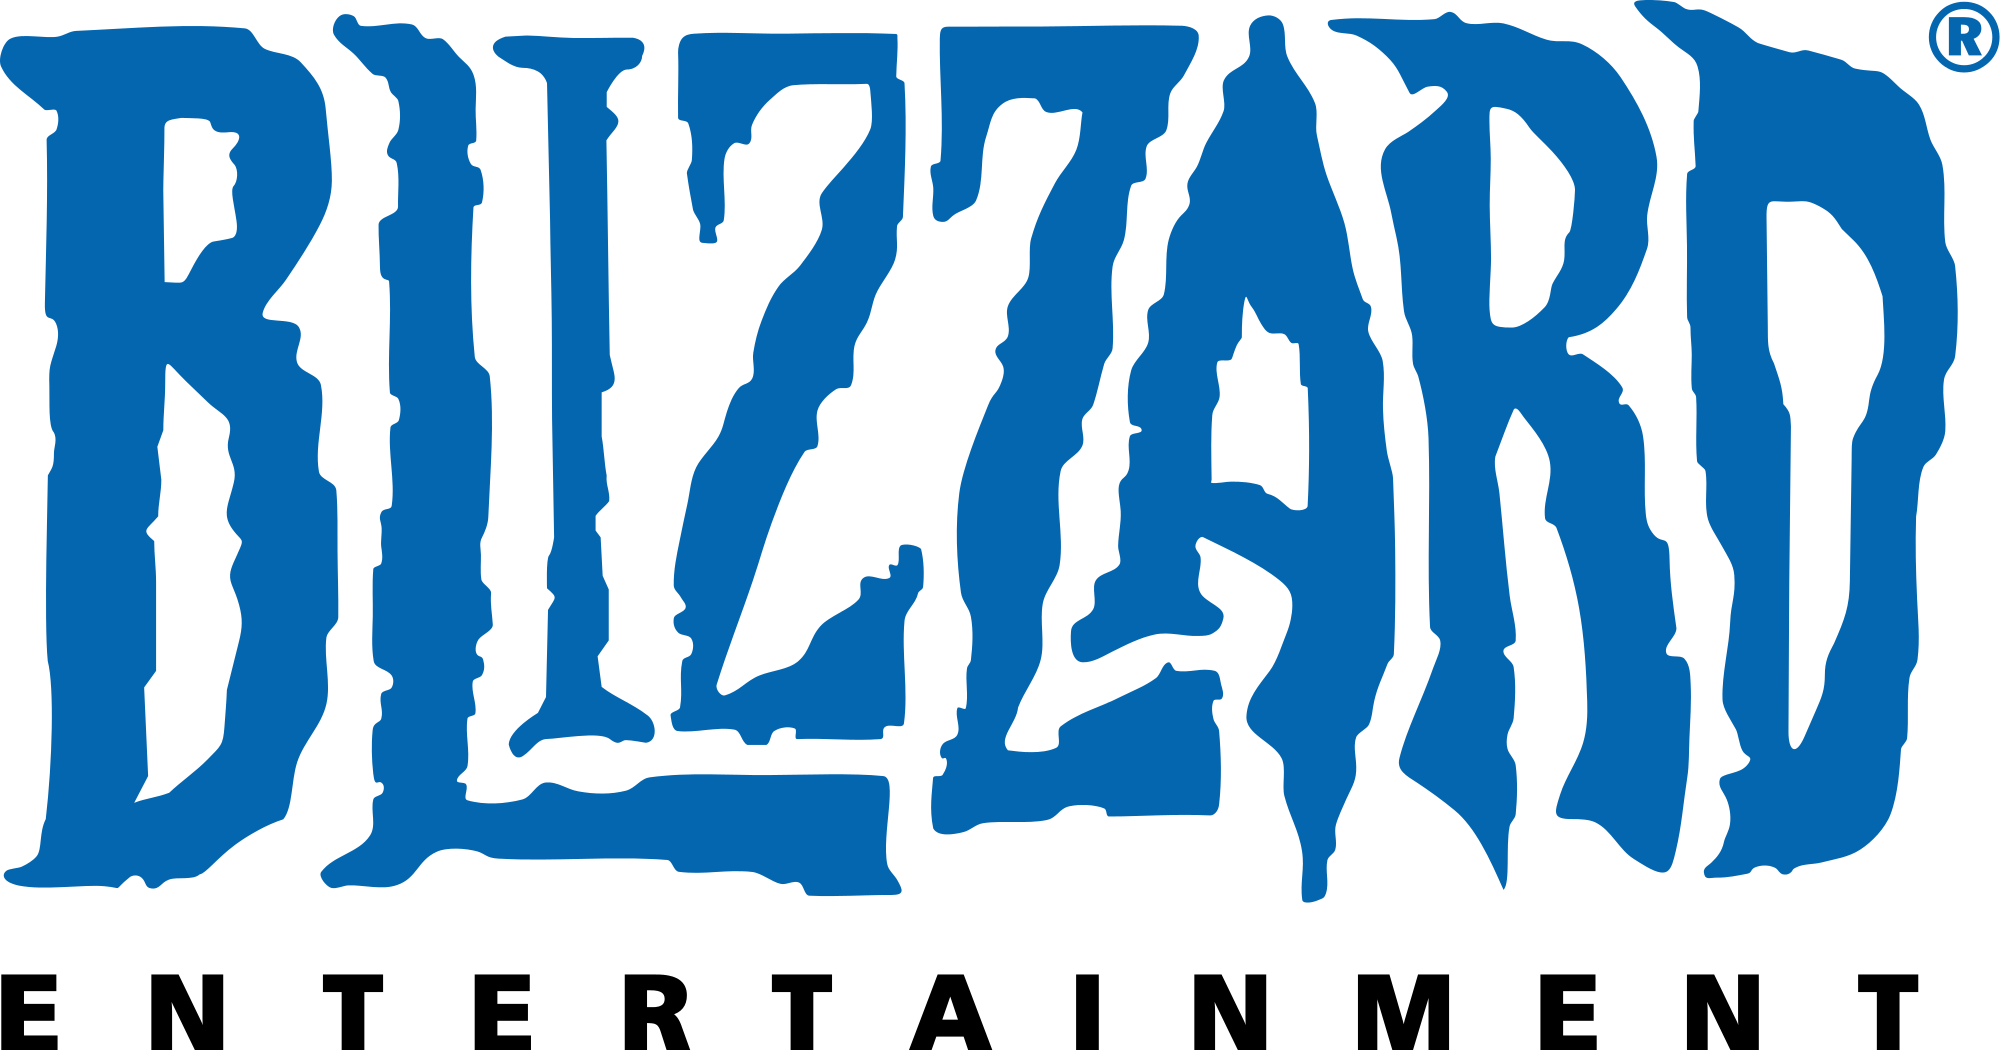 marketing analysis of blizzard entertainment Valuation and financial statement analysis for activision valuation and financial statement analysis for blizzard entertainment, inc is a leader in.